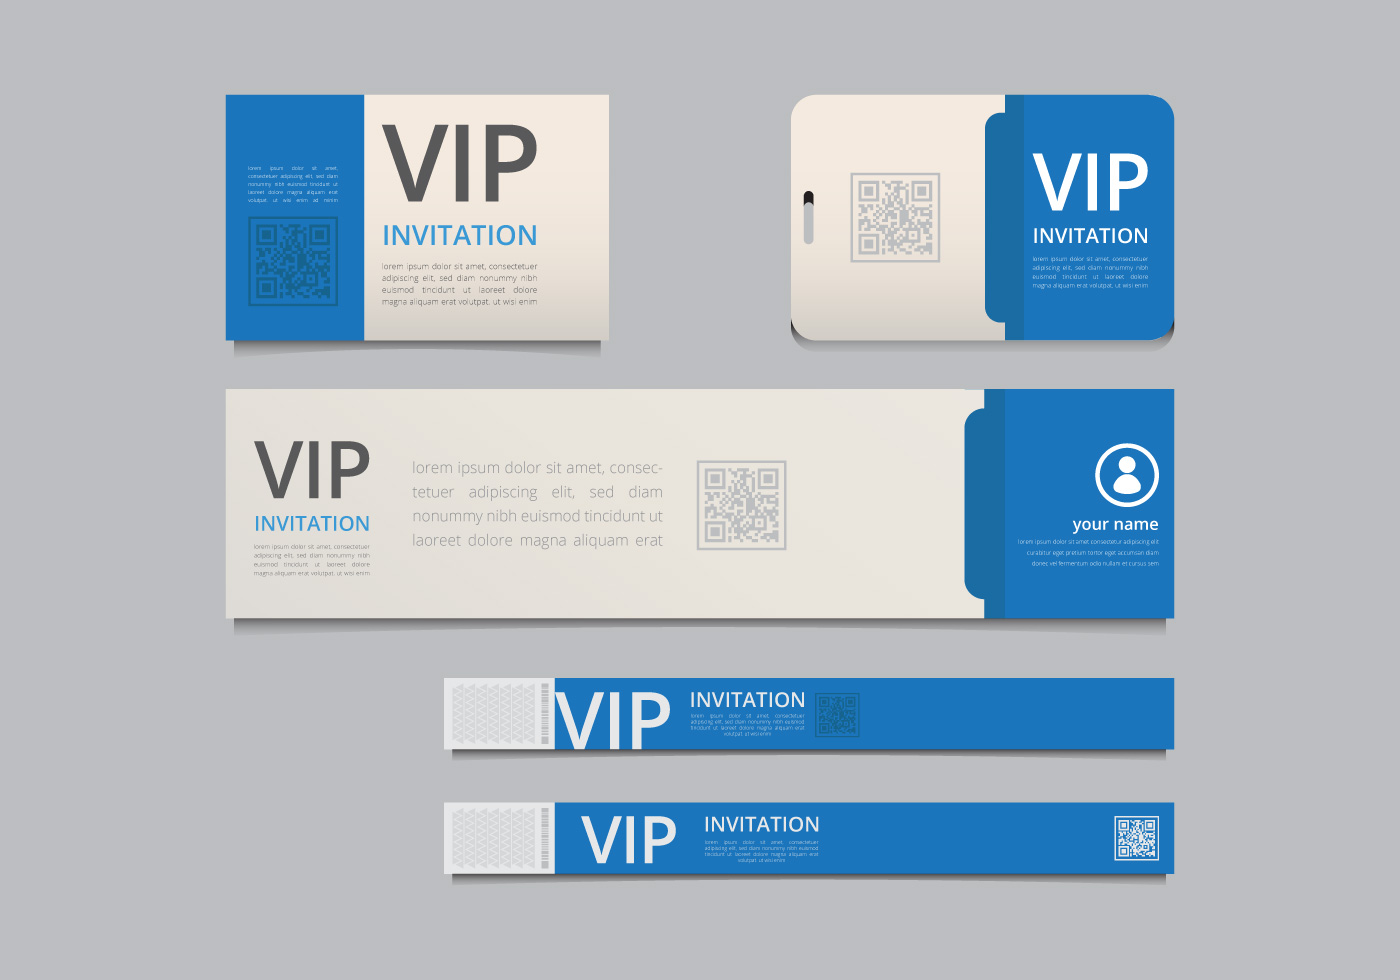 hight resolution of vip pass id card template vip pass for event template realistic blank vertical id with purple ribbon mockup download free vector art stock graphics